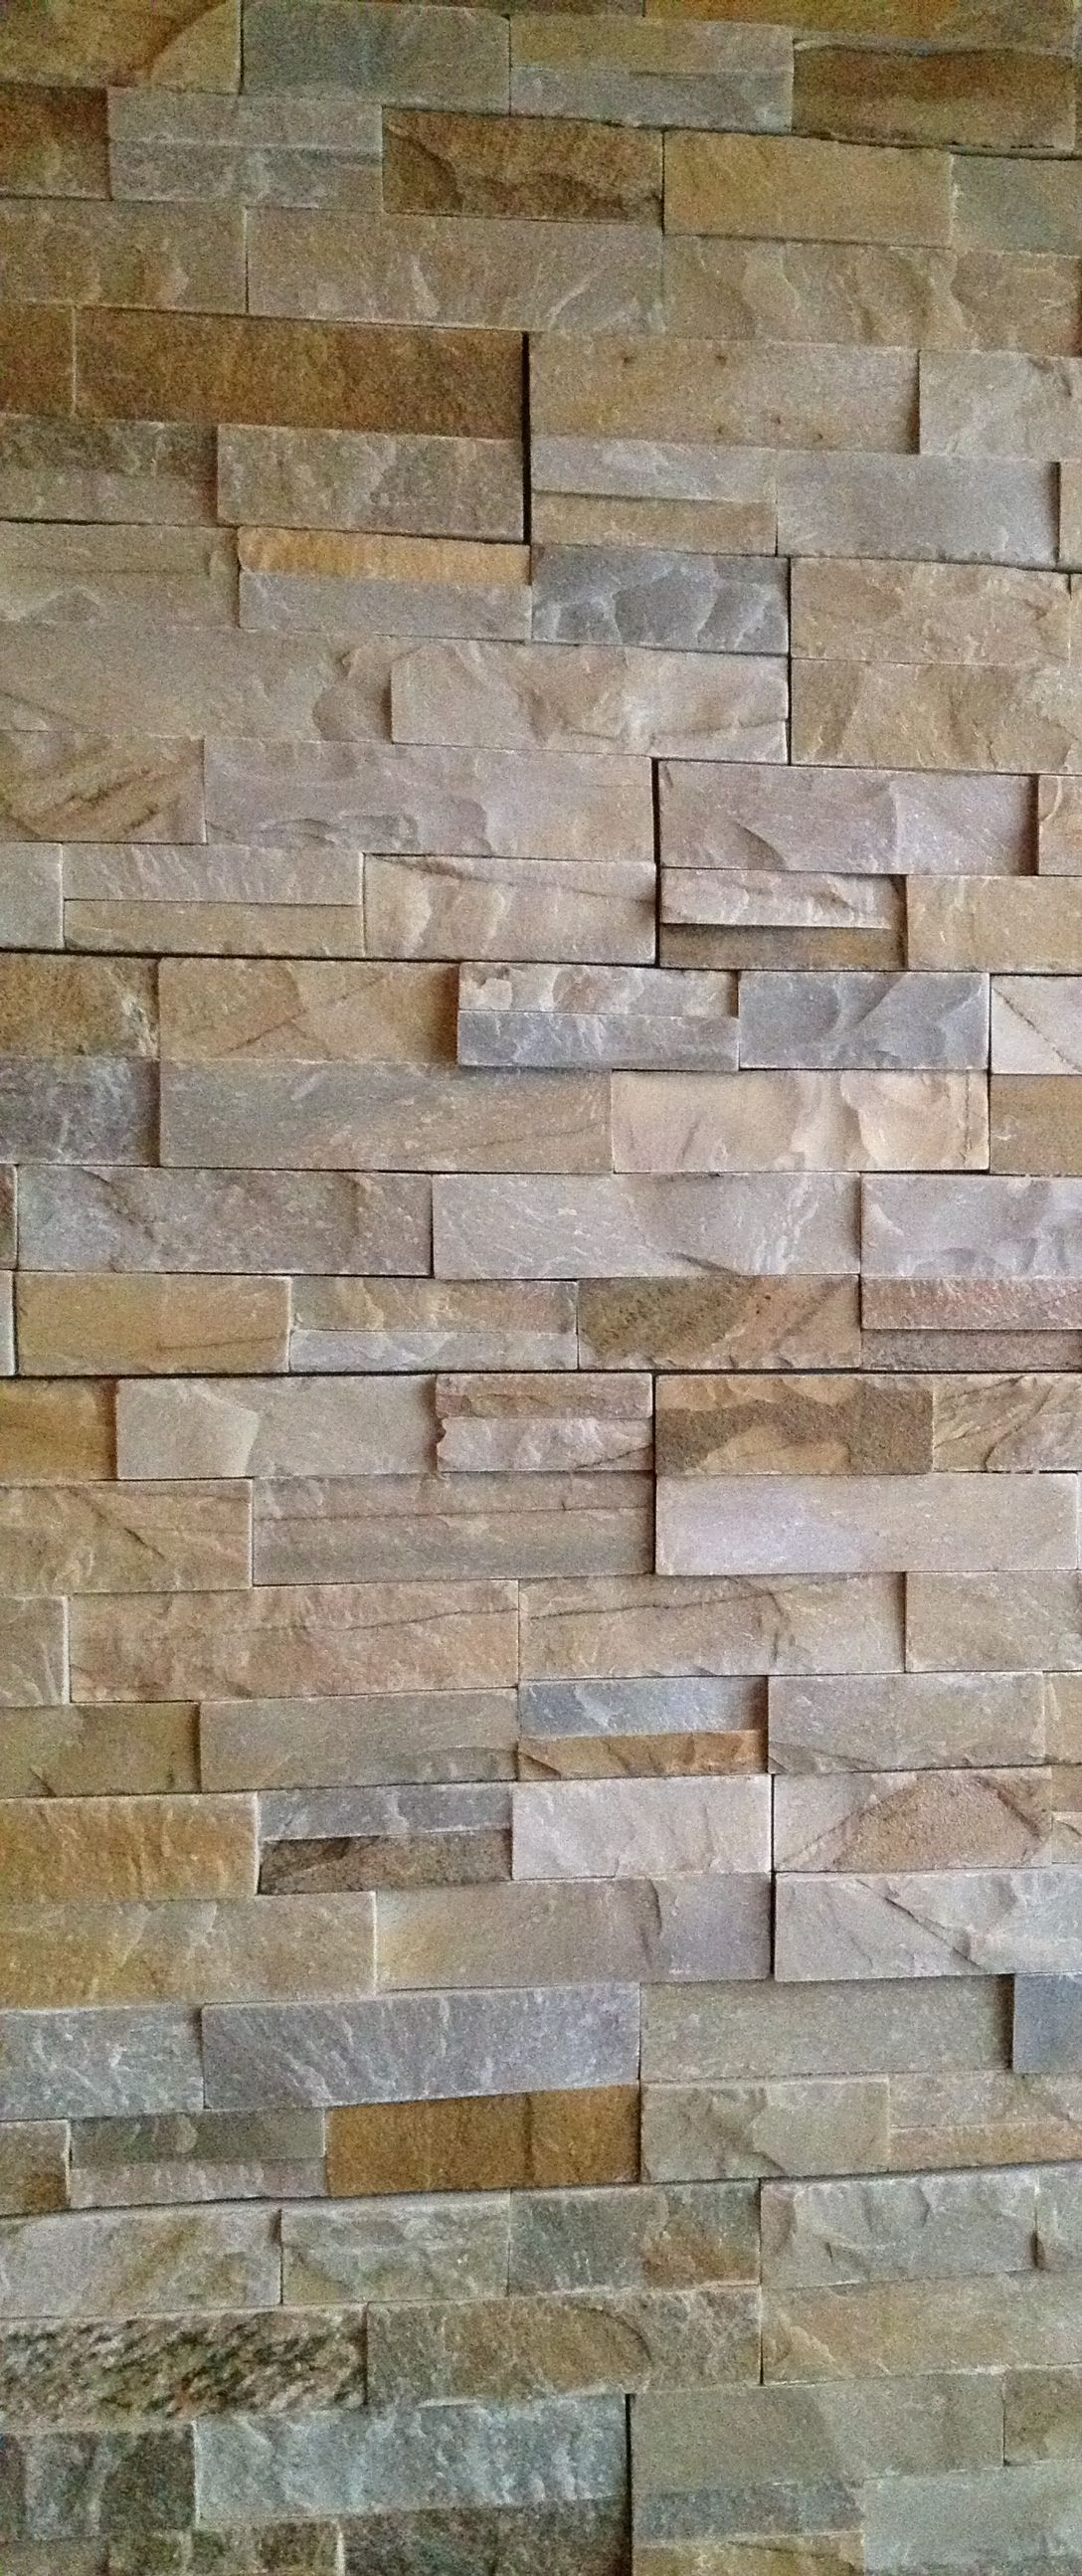 Desert Quartz Ledgestone Natural Stone Wall Tile (6x14) $3.98 | Tile ...